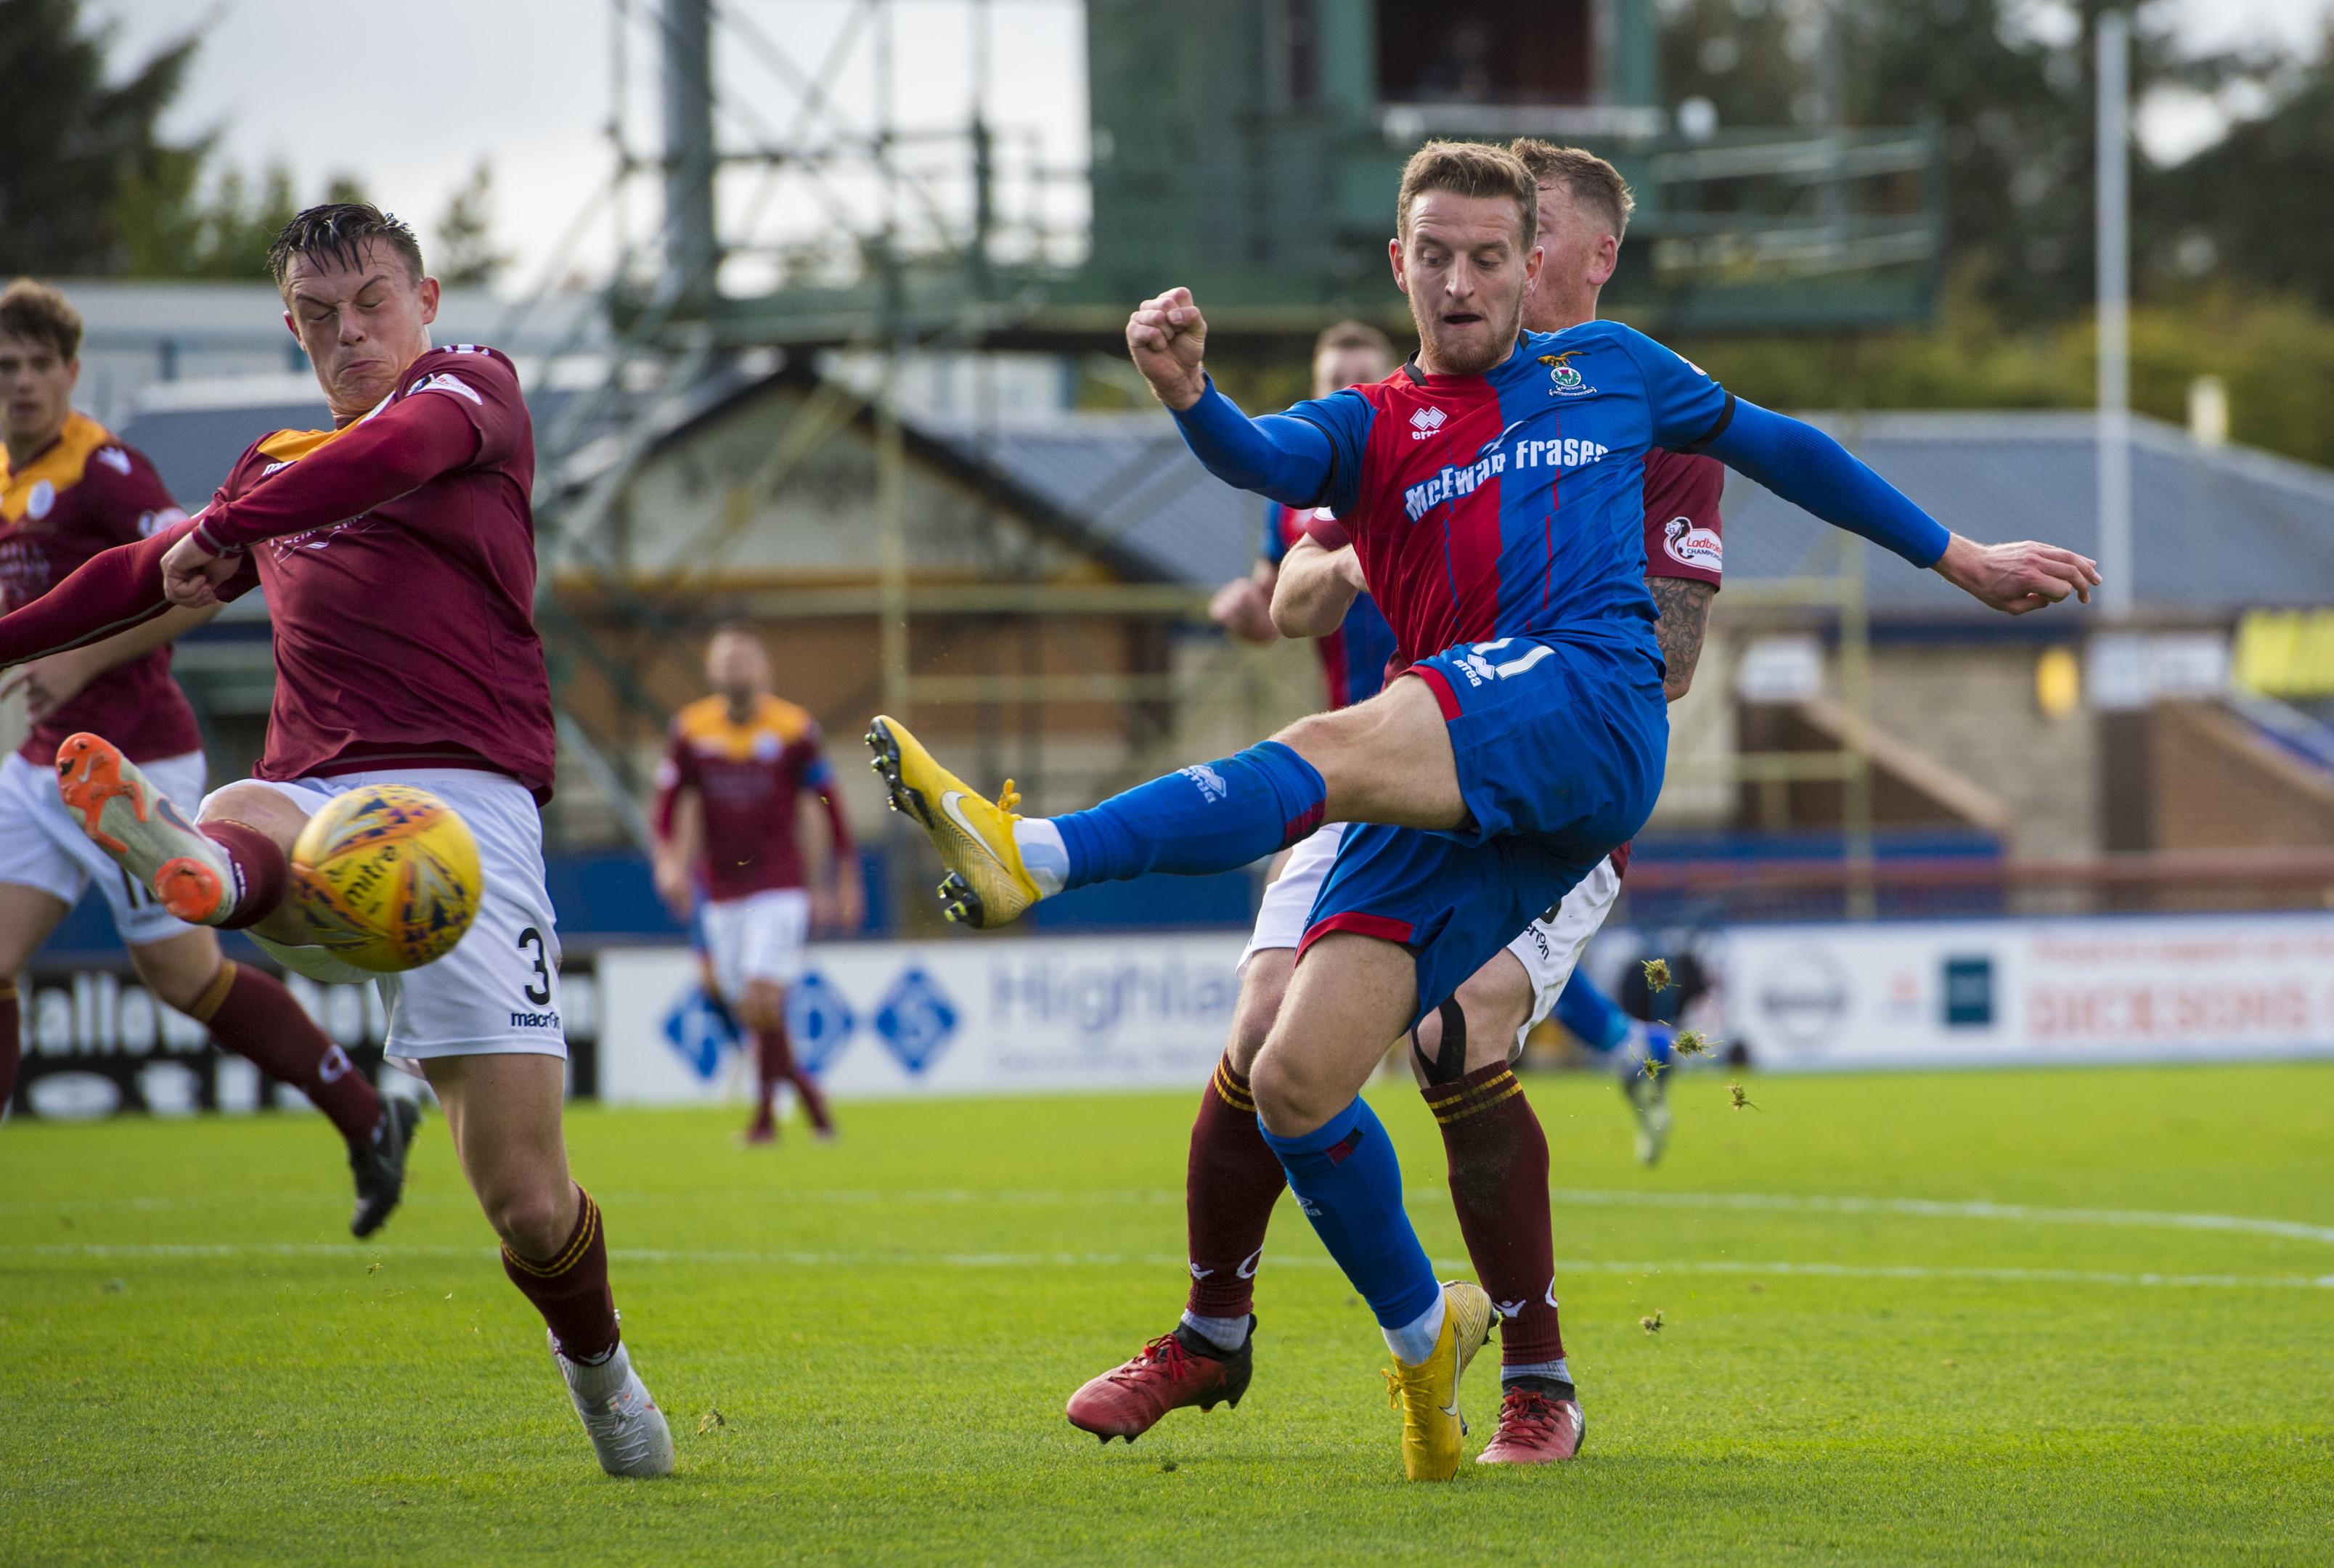 28/09/18 LADBROKES CHAMPIONSHIP  INVERNESS CT VS QOTS   THE TULLOCH CALEDONIAN STADIUM - INVERNESS  Inverness CT's Tom Walsh has a shot on goal